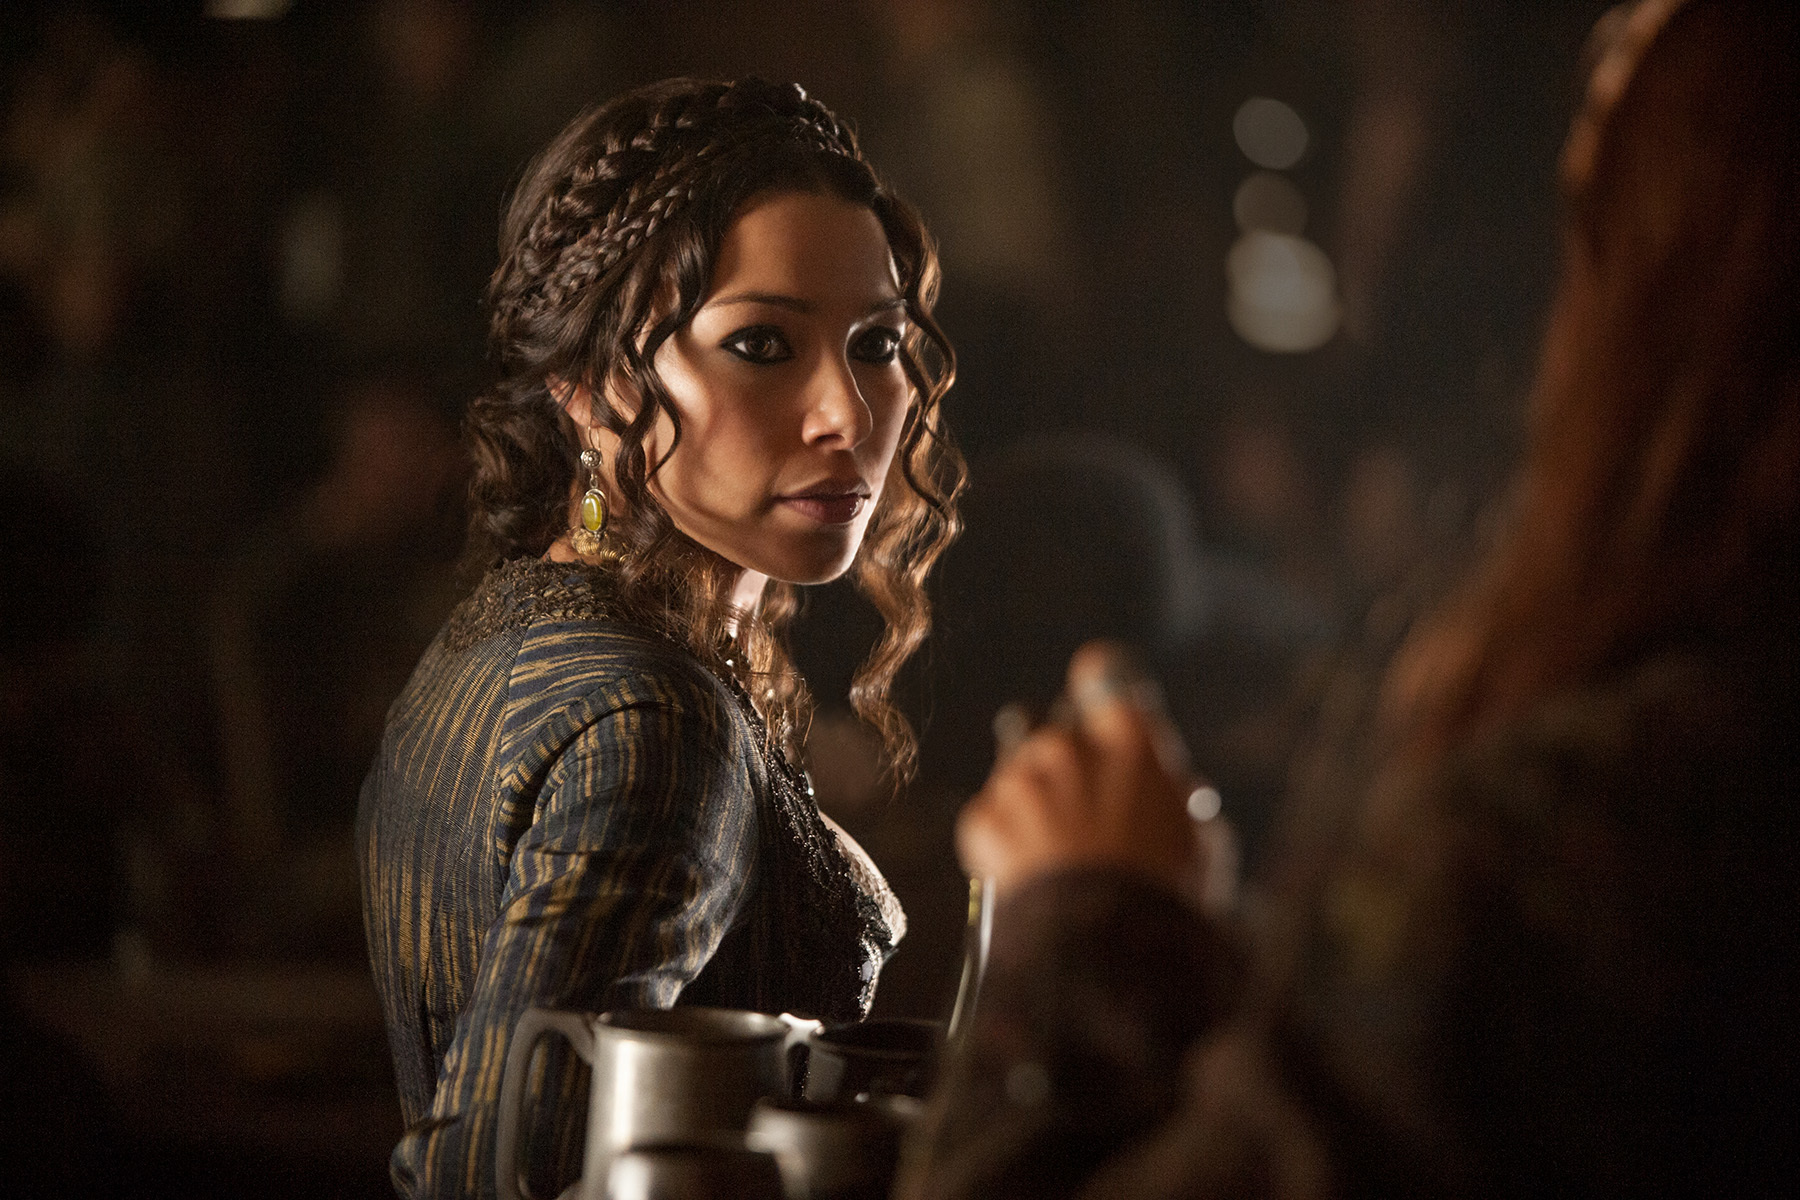 Queer and Diverse, Black Sails Is Quietly TVs Most